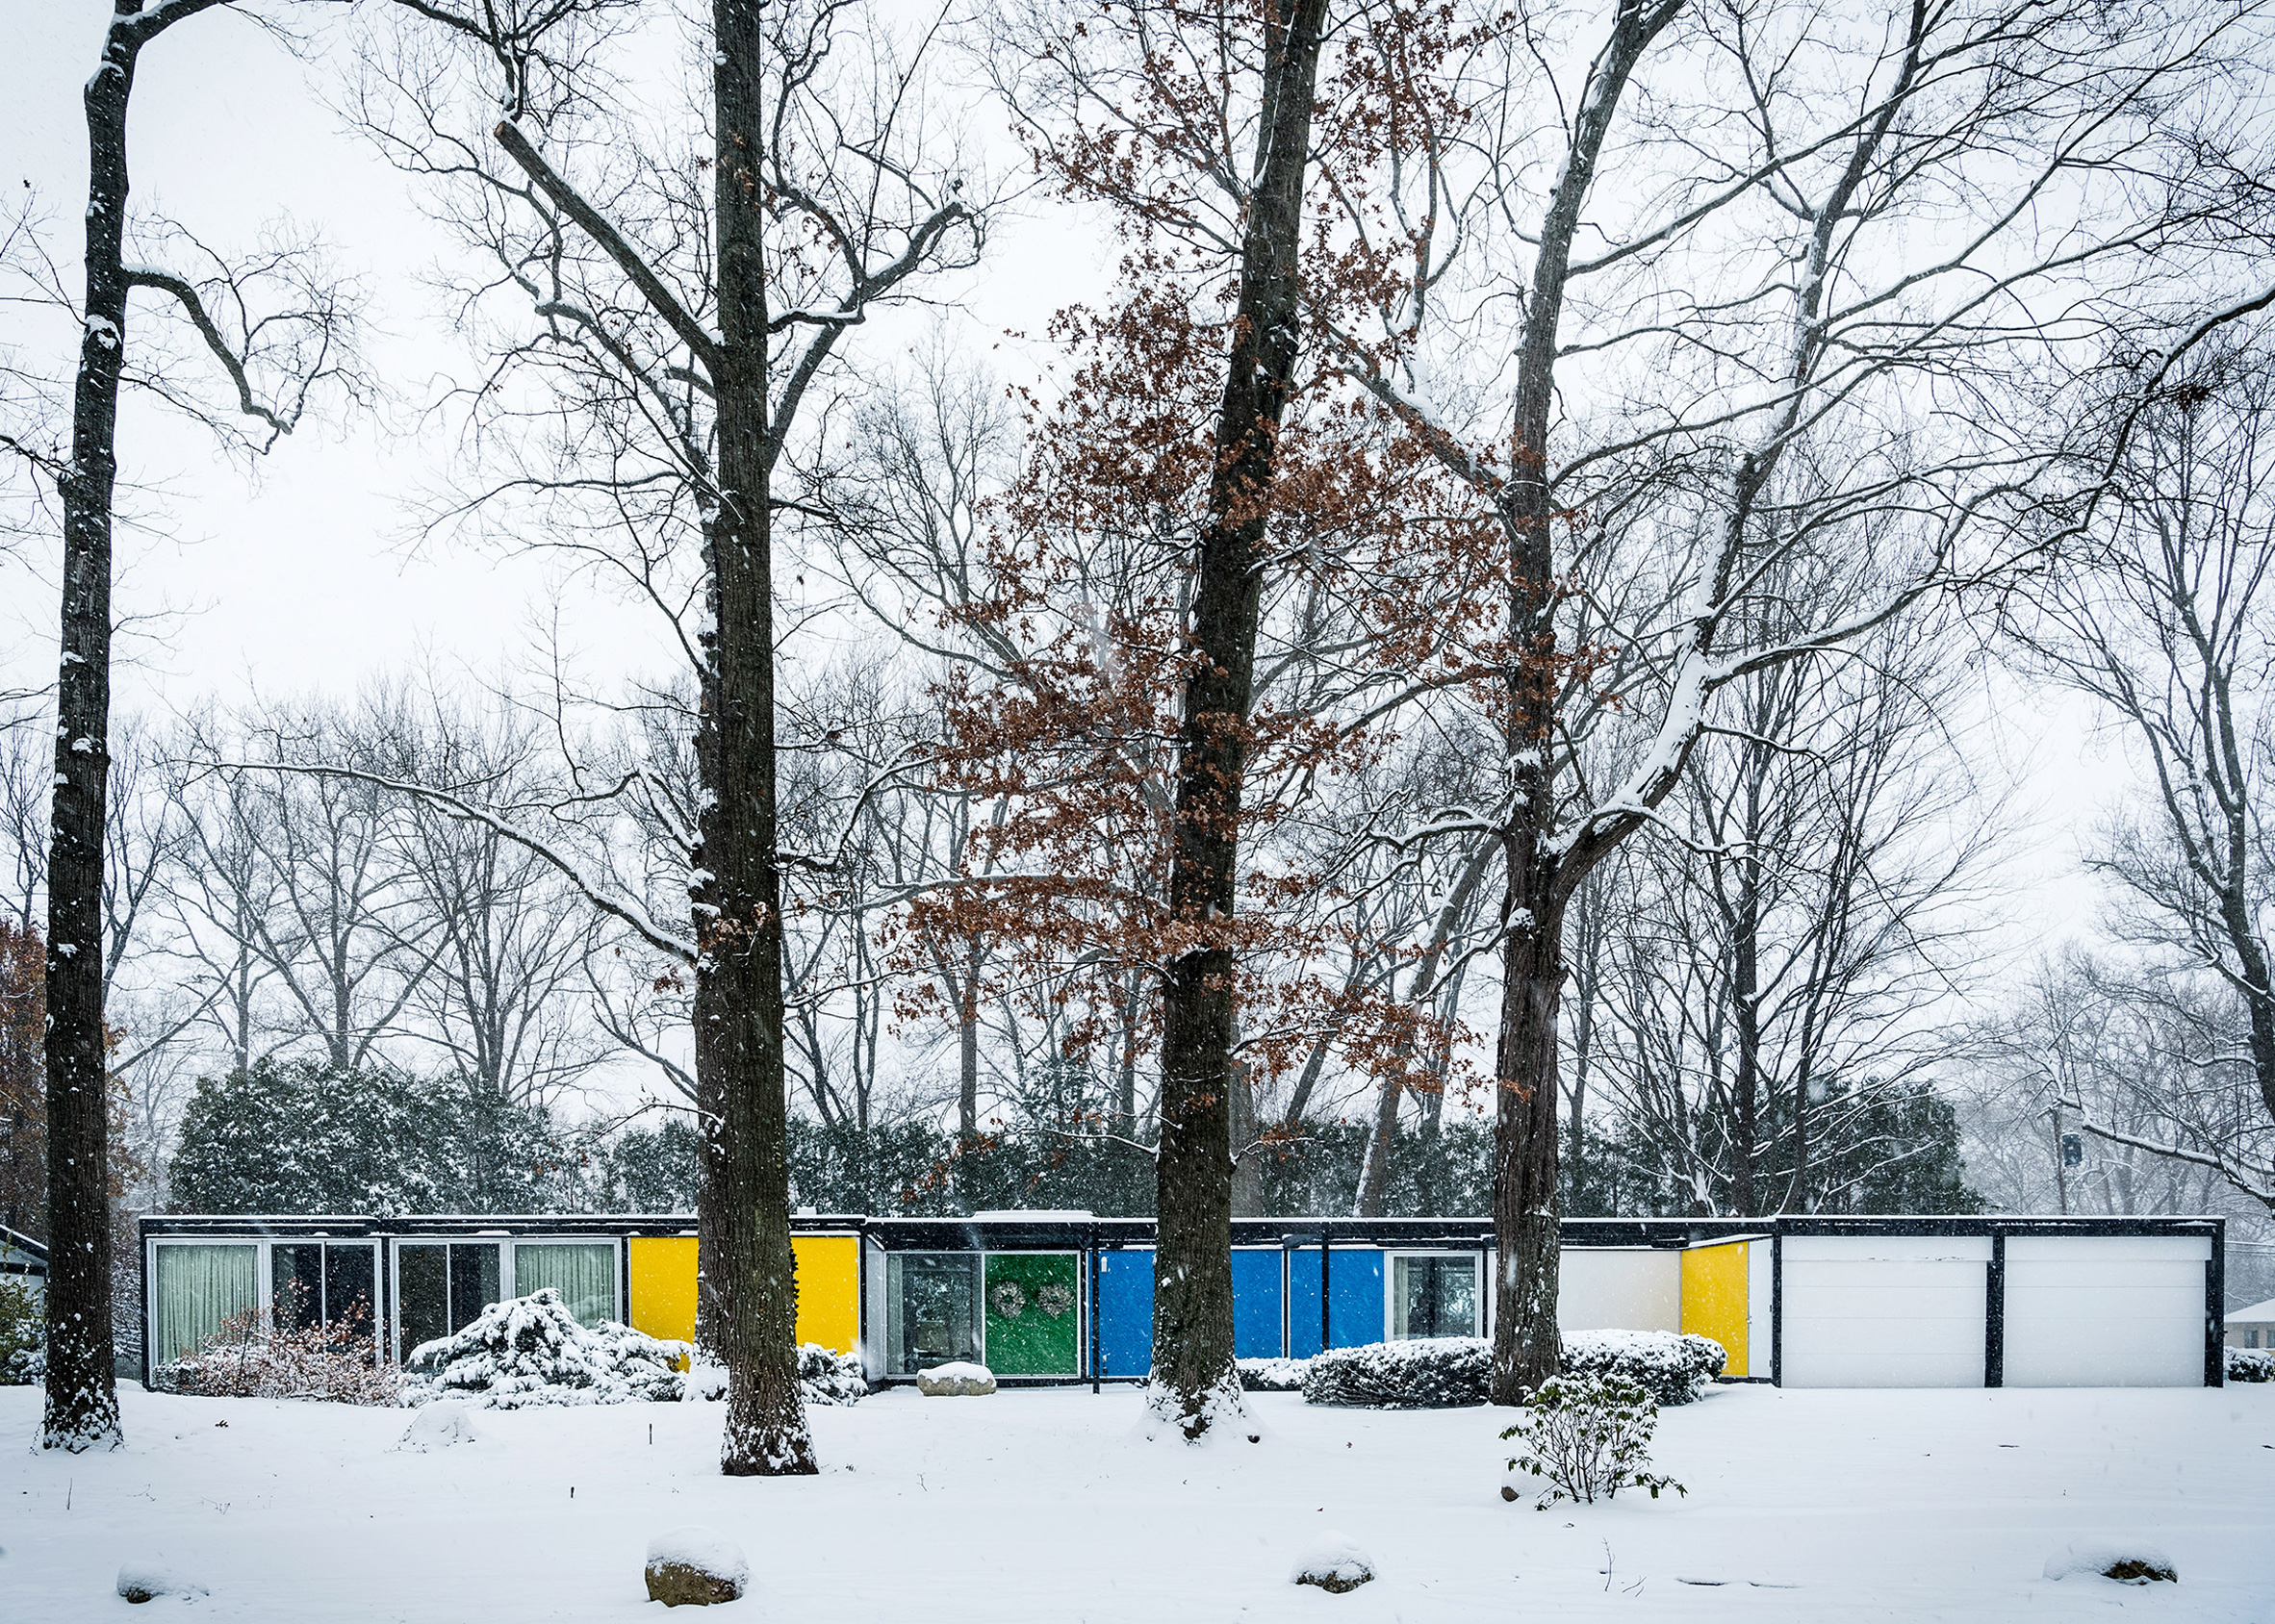 Frost House by Emil Tessin, renovated by Karen Valentine and Bob Coscarelli